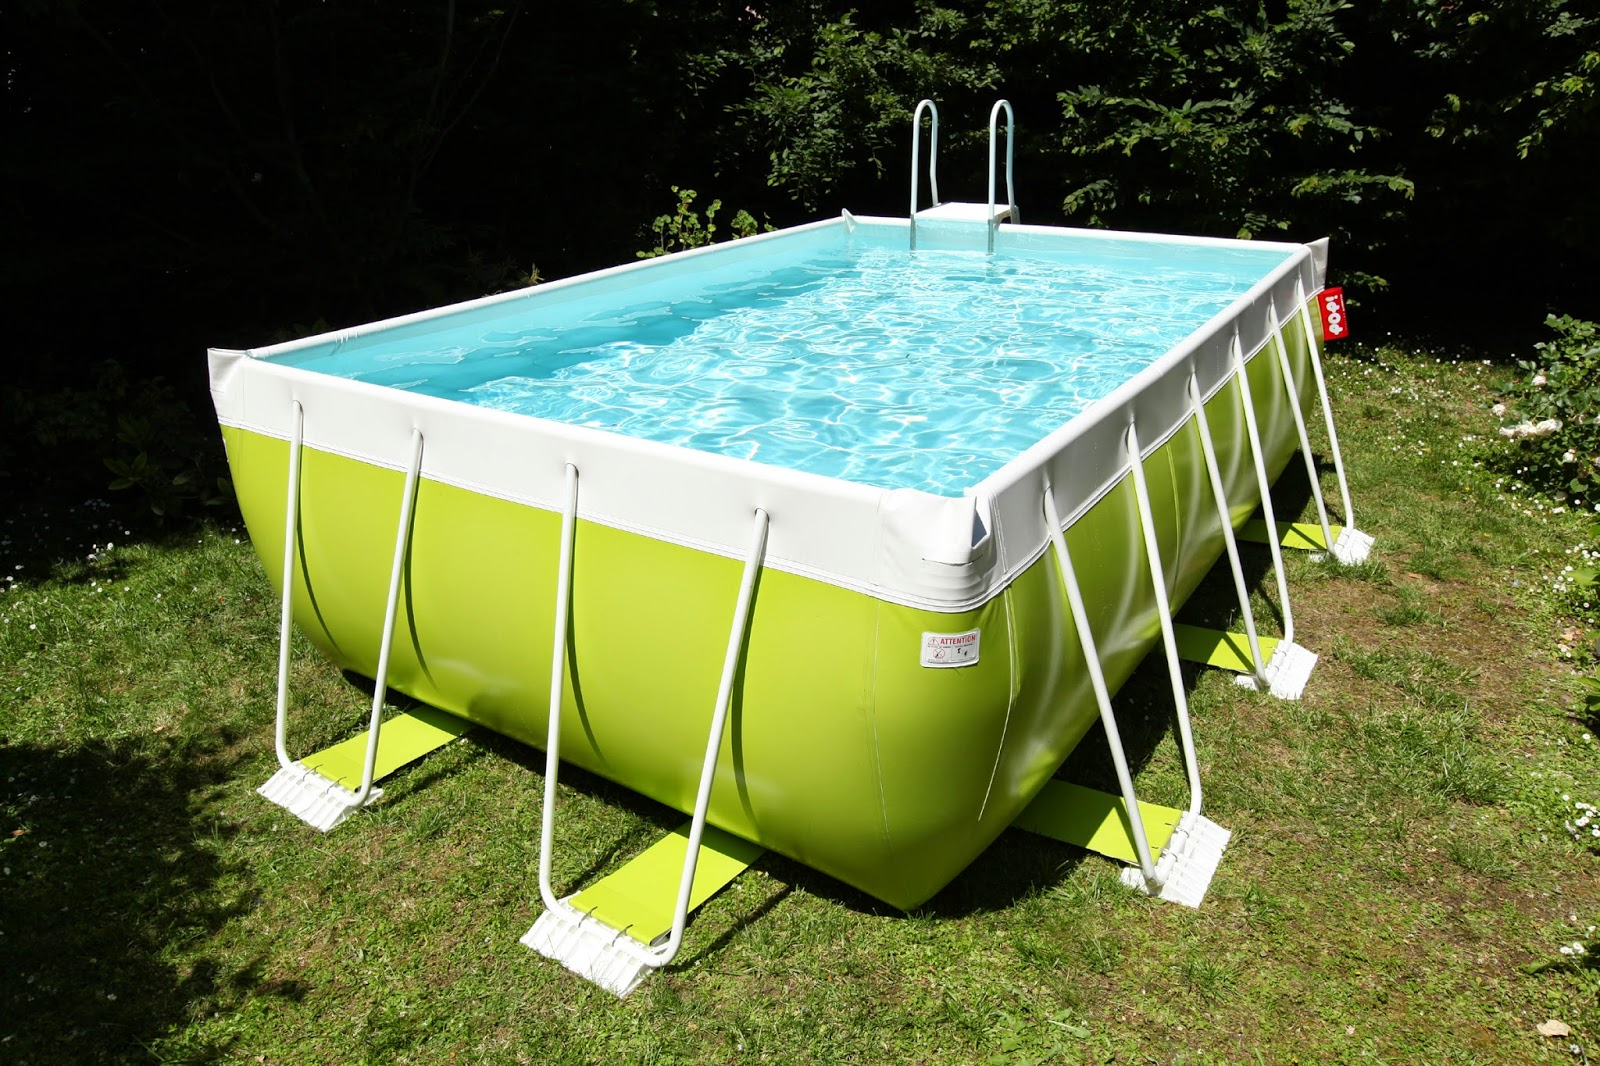 Tappeto Sottopiscina Amazon Sotto Piscina Fuori Terra Great Cloro Pastiglie Combinate